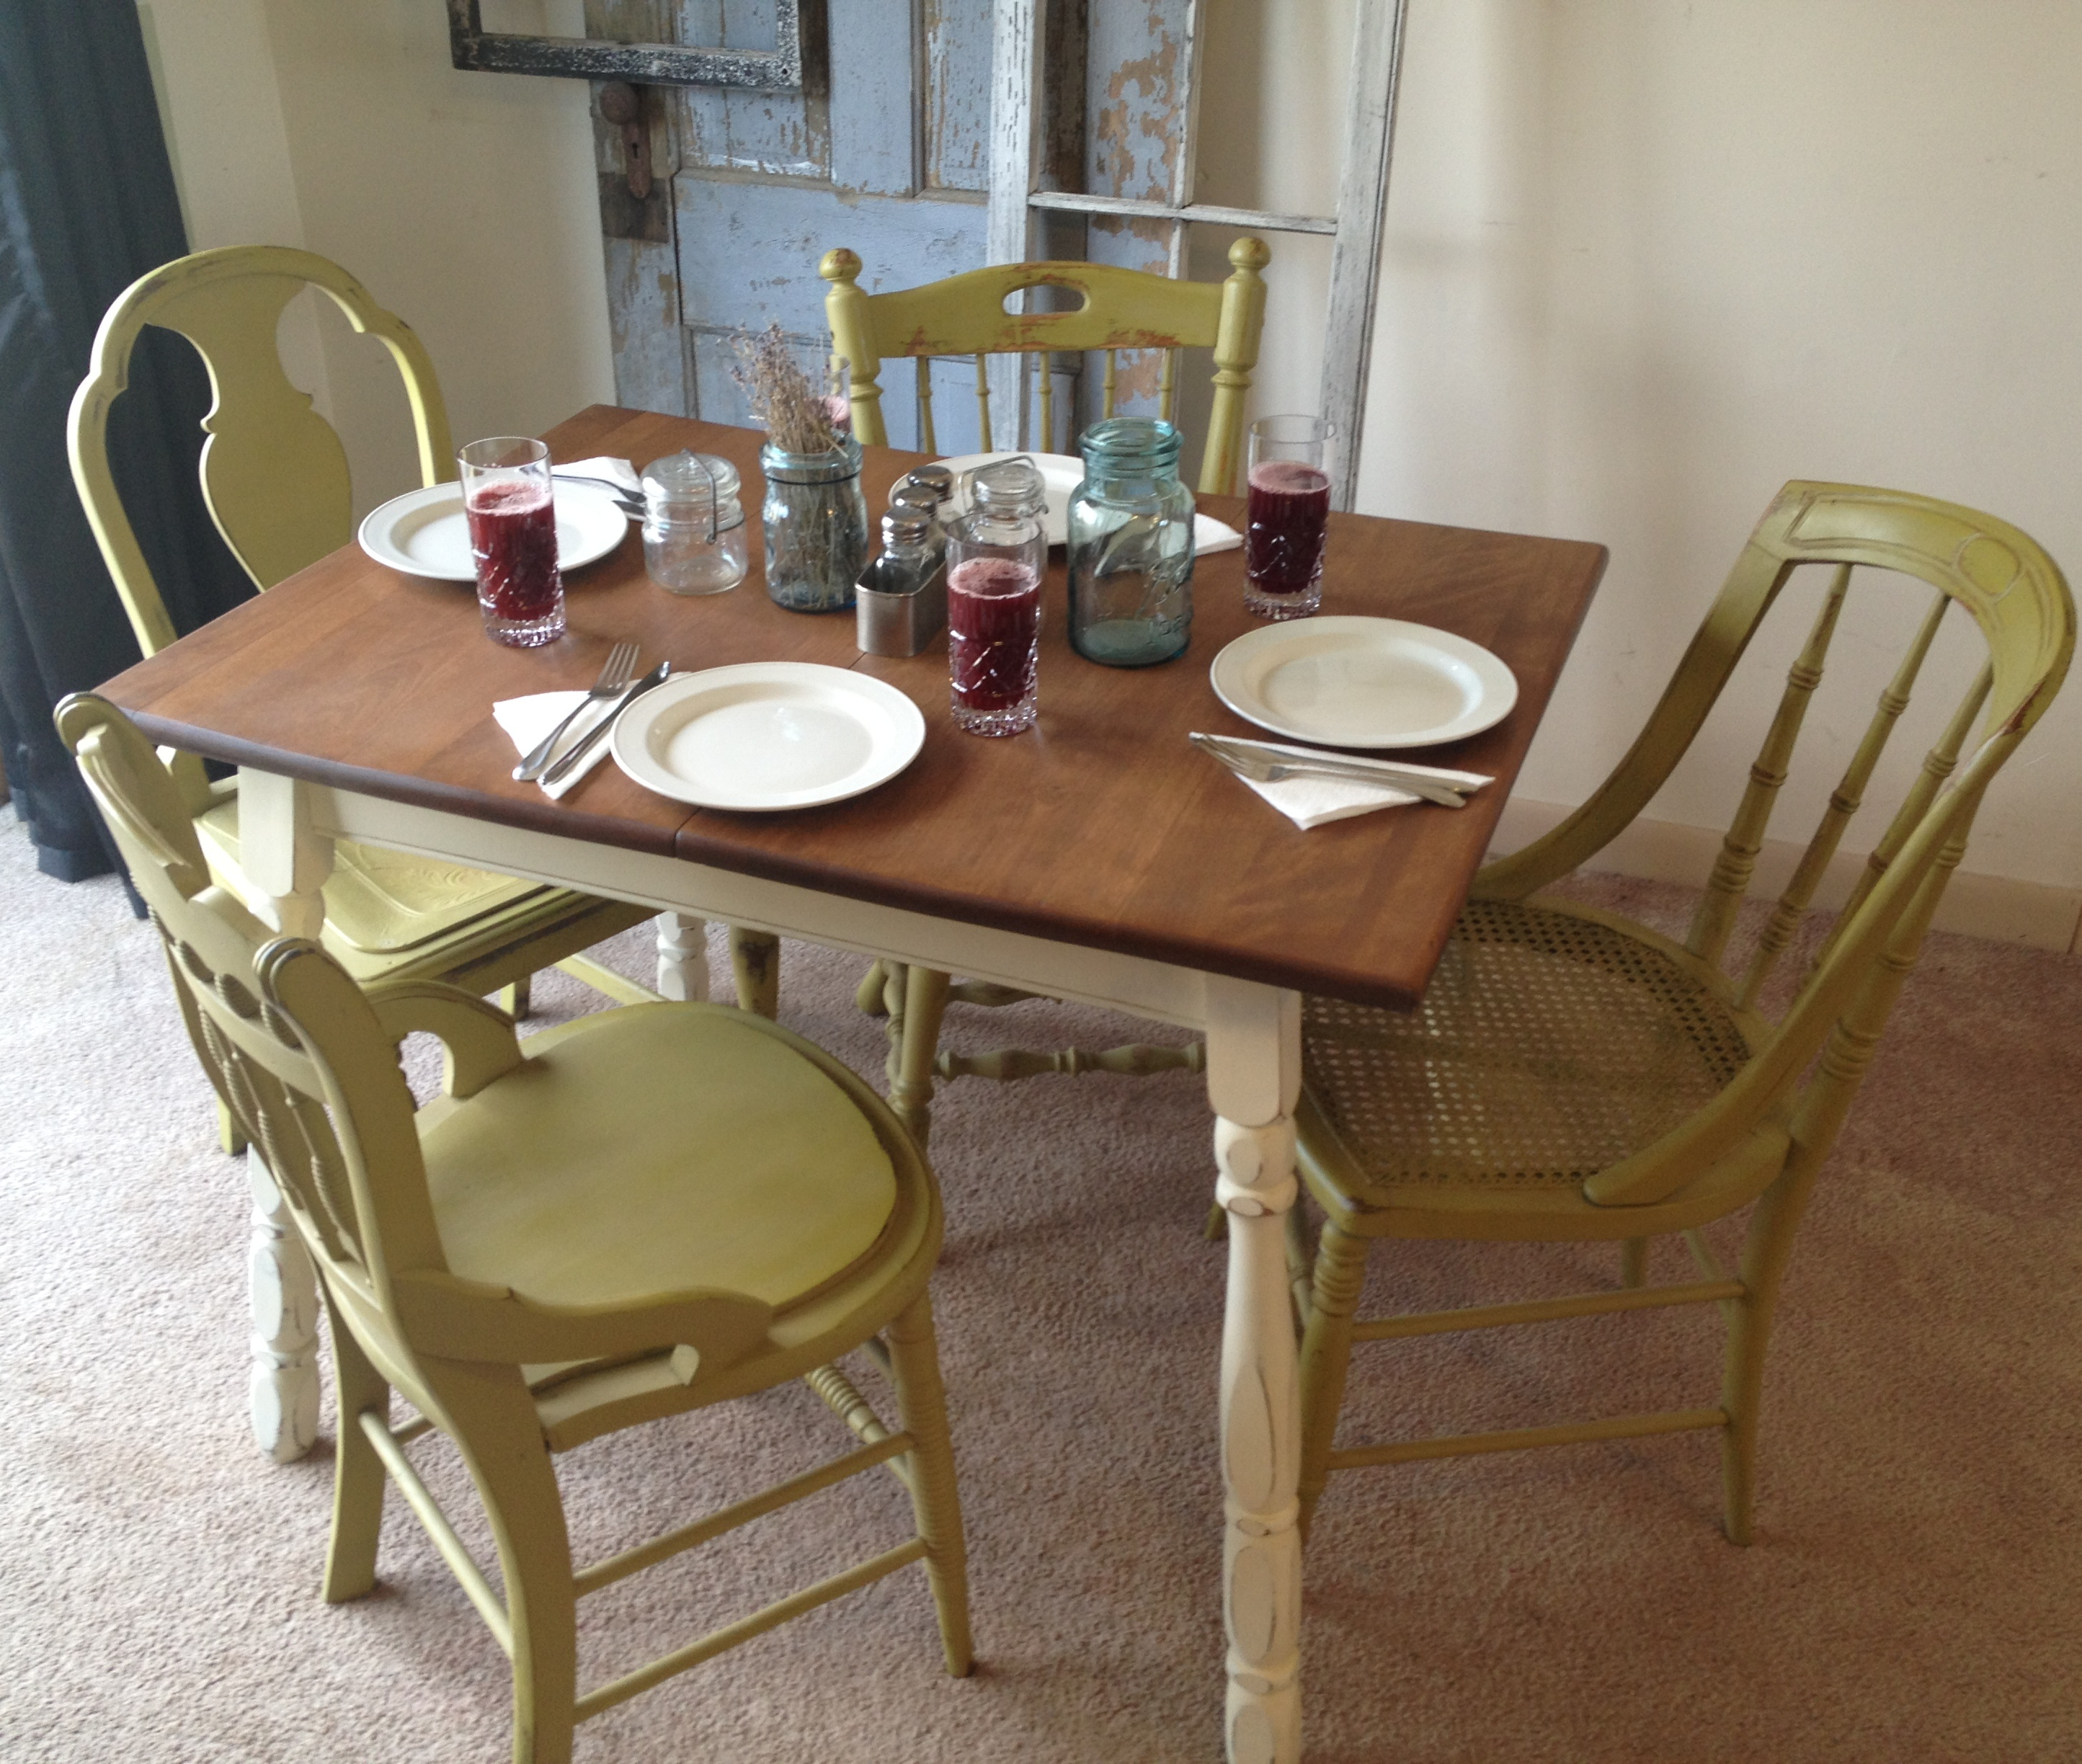 vintage kitchen table and chairs photo - 3